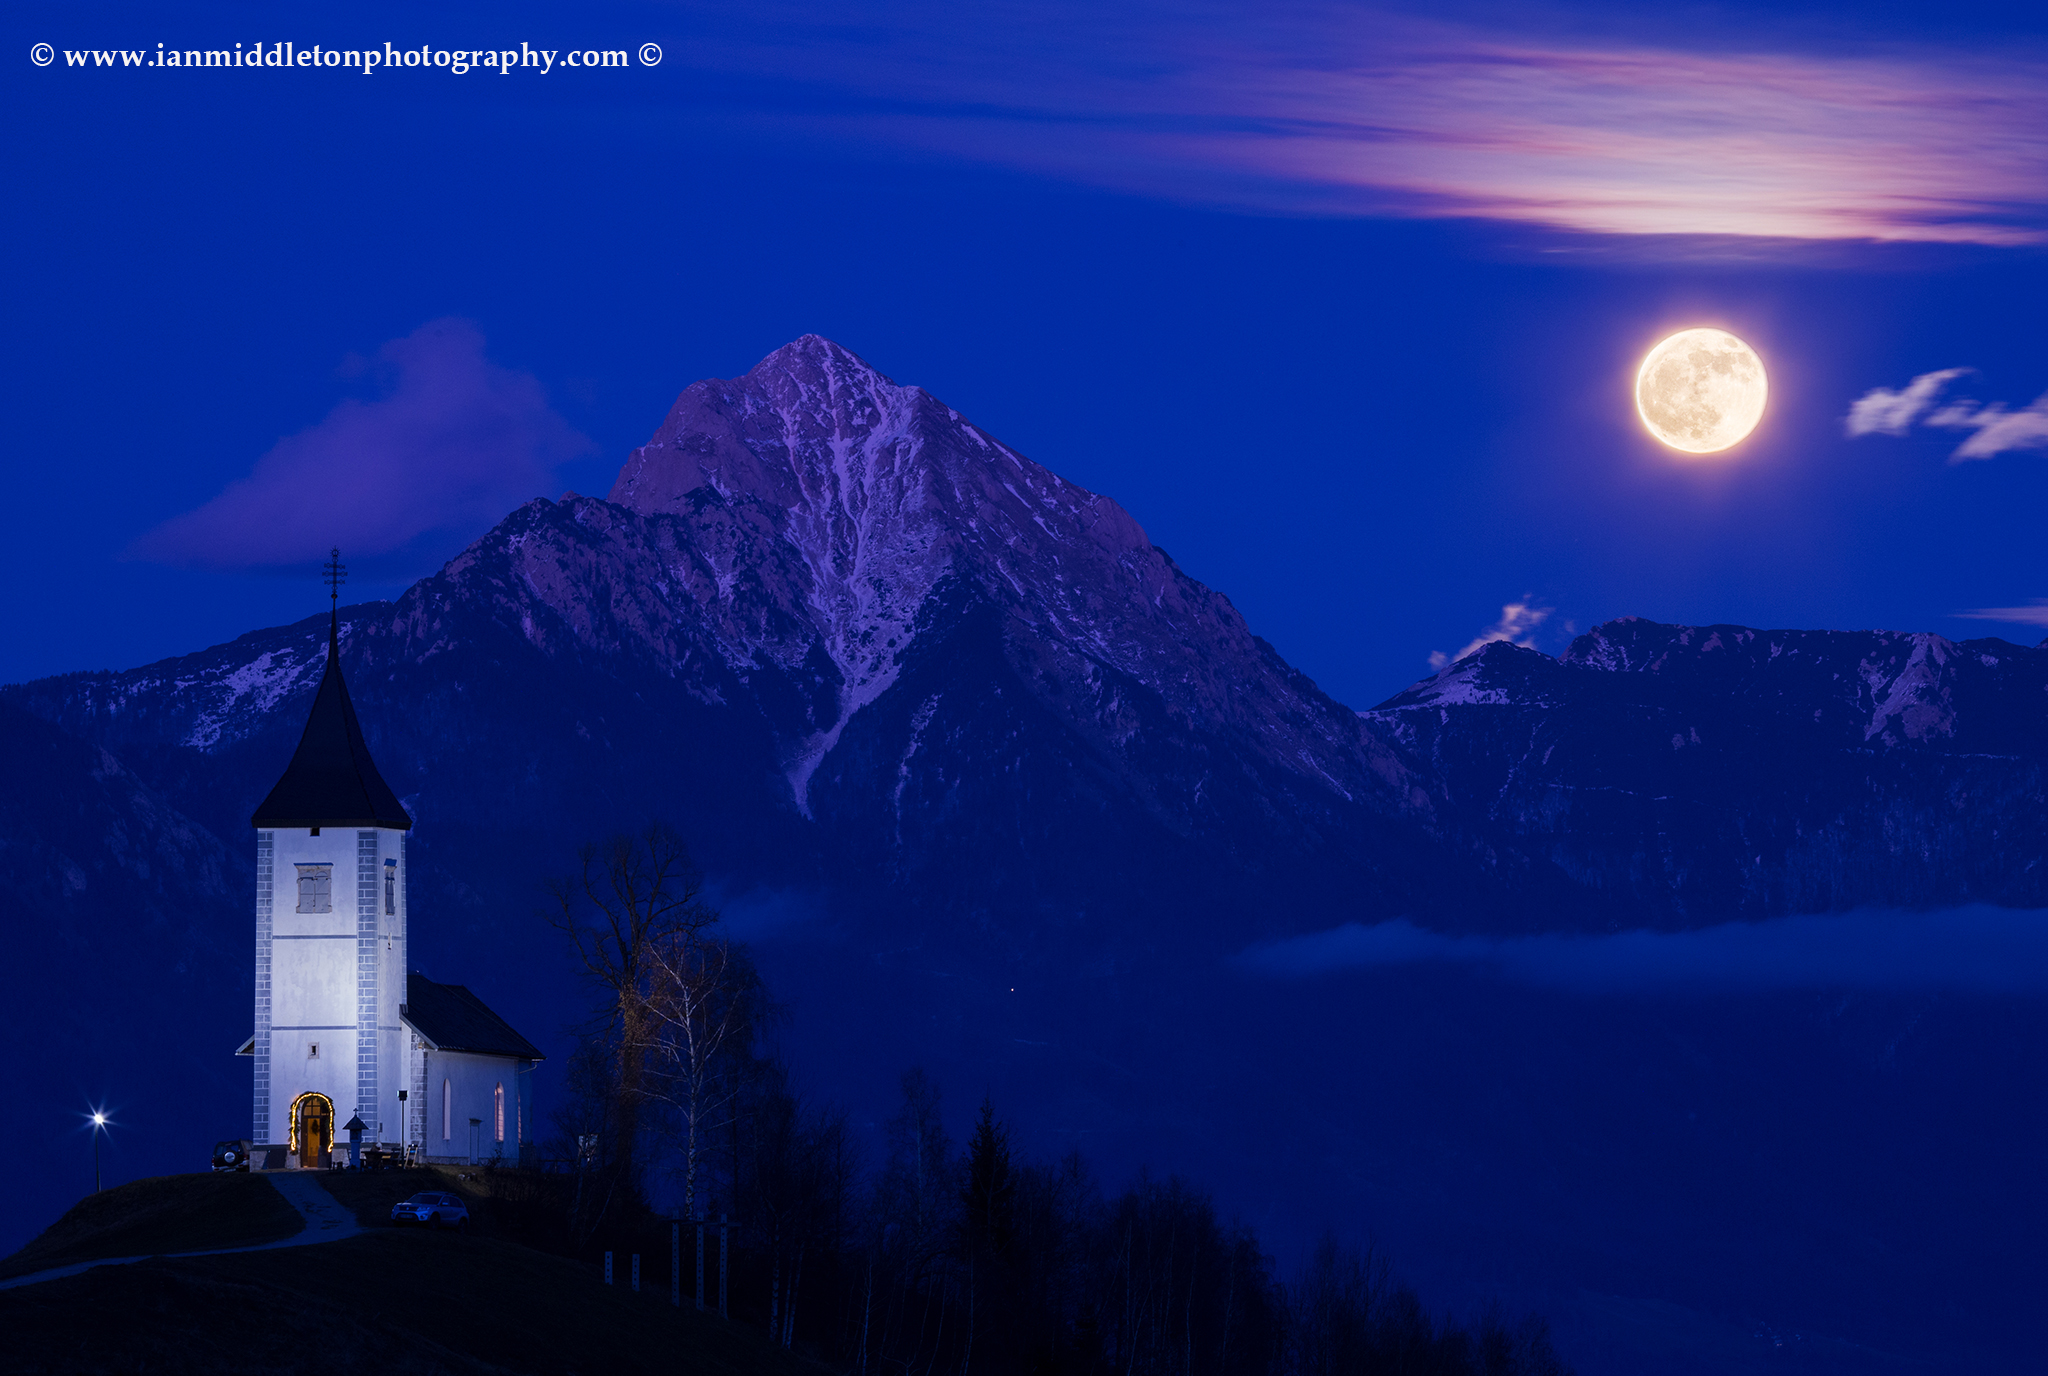 Full moon rising during the Blue Hour over Jamnik church of Saints Primus and Felician, perched on a hill on the Jelovica Plateau with the kamnik alps and Storzic mountain in the background, Slovenia.